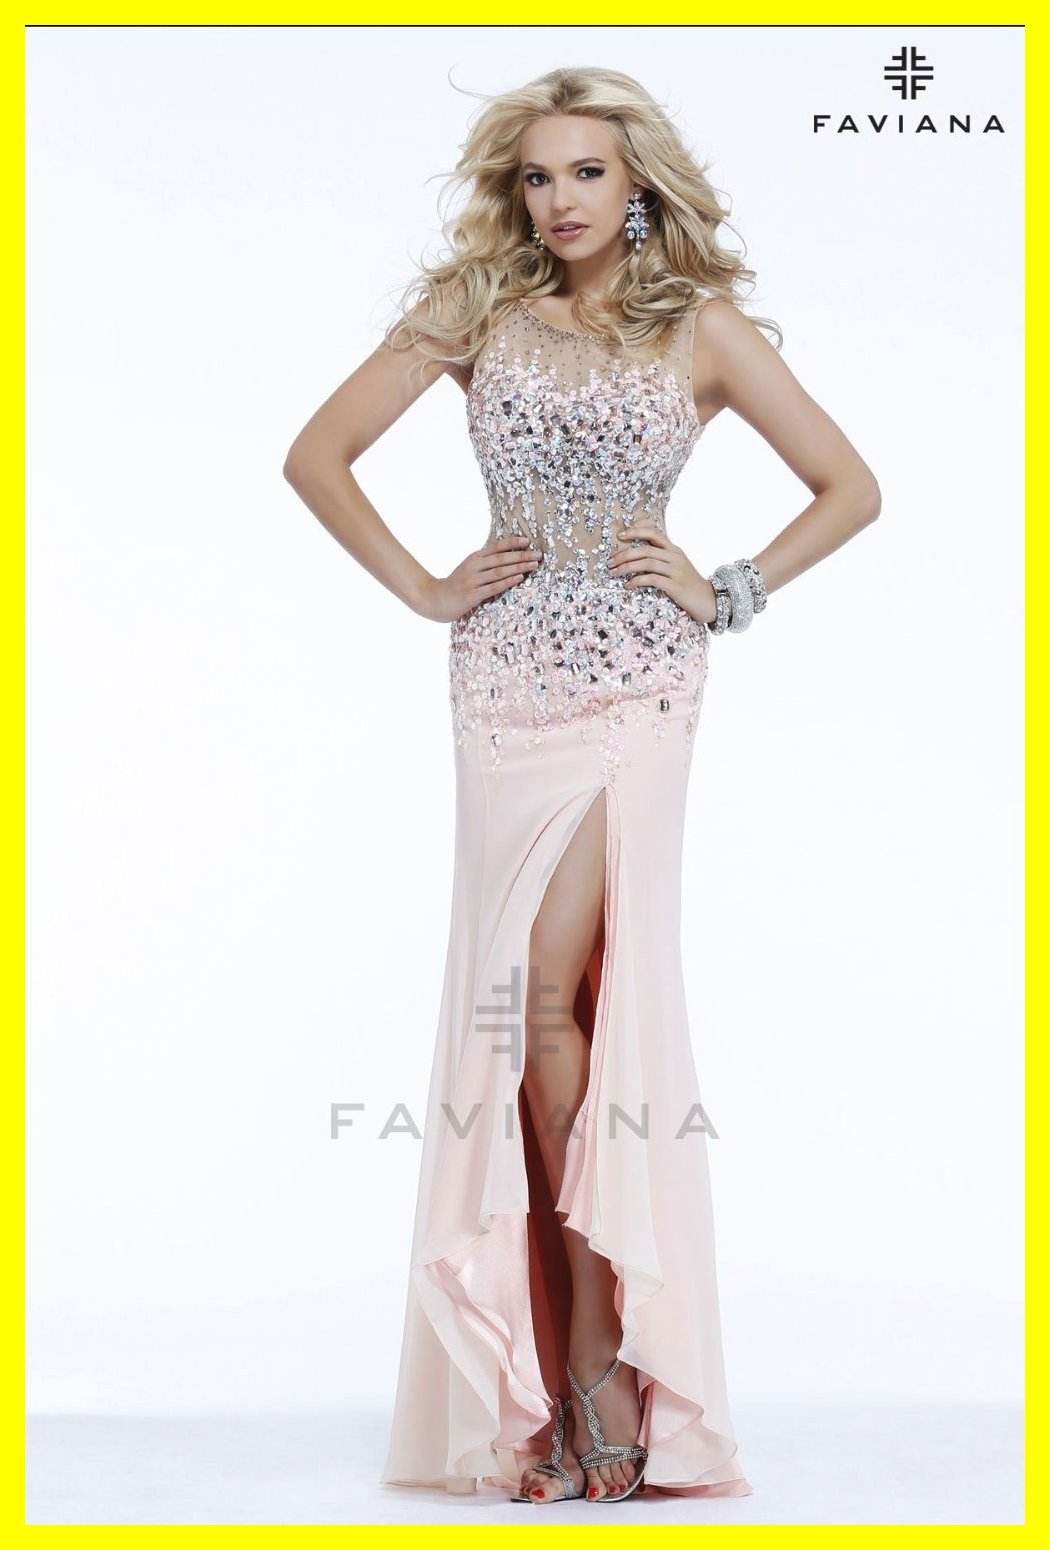 Party Dress Rental - Ocodea.com